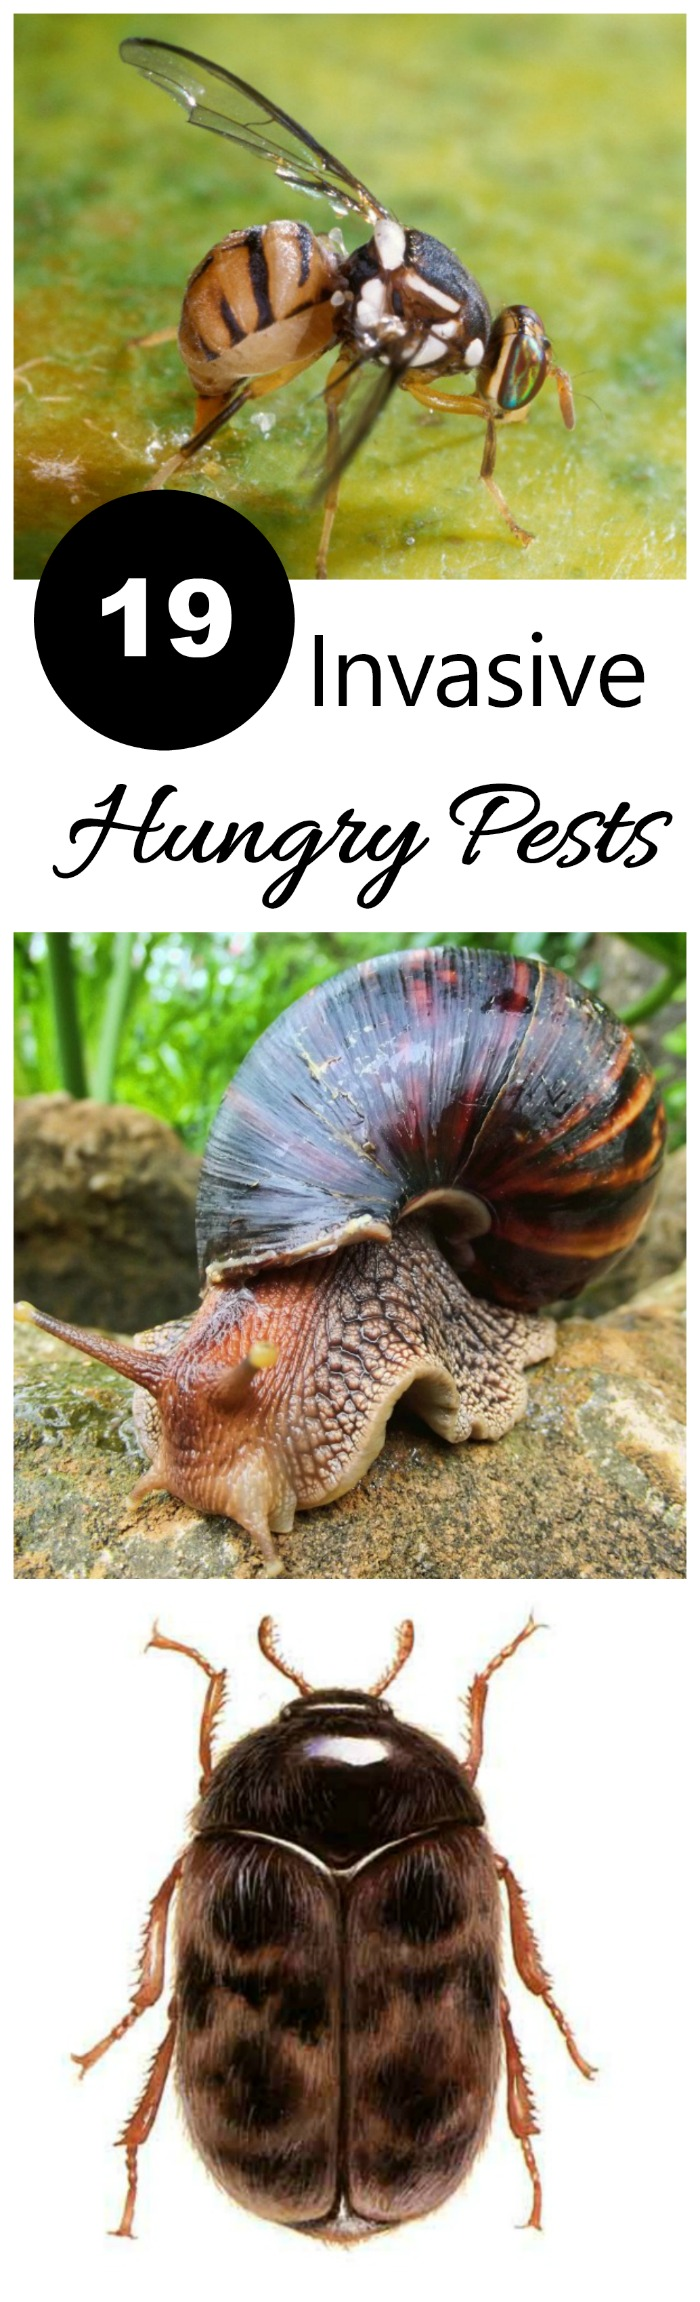 19 Invasive Hungry Pests that are a threat to our gardens.